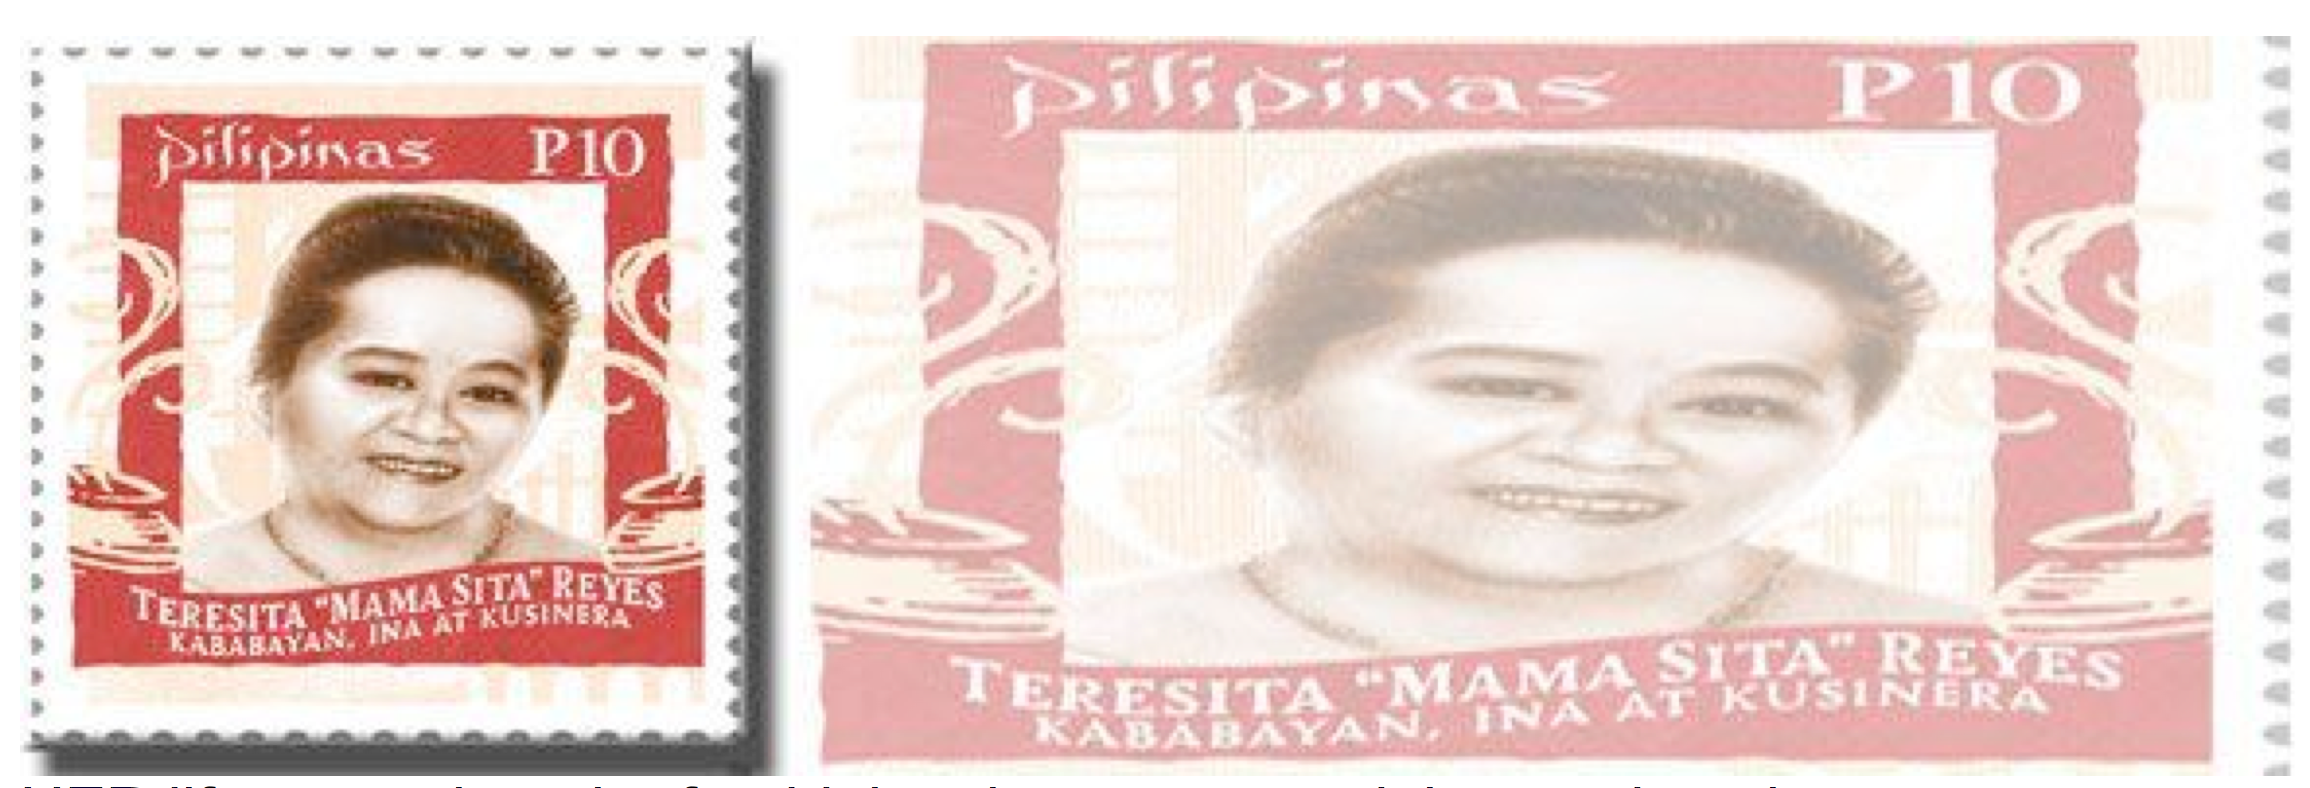 Her life story, though oft-told, has been repeated time and again as a means to encourage the ordinary Filipino to rise above their circumstance and achieve the same significance and distinction that this woman has accomplished.